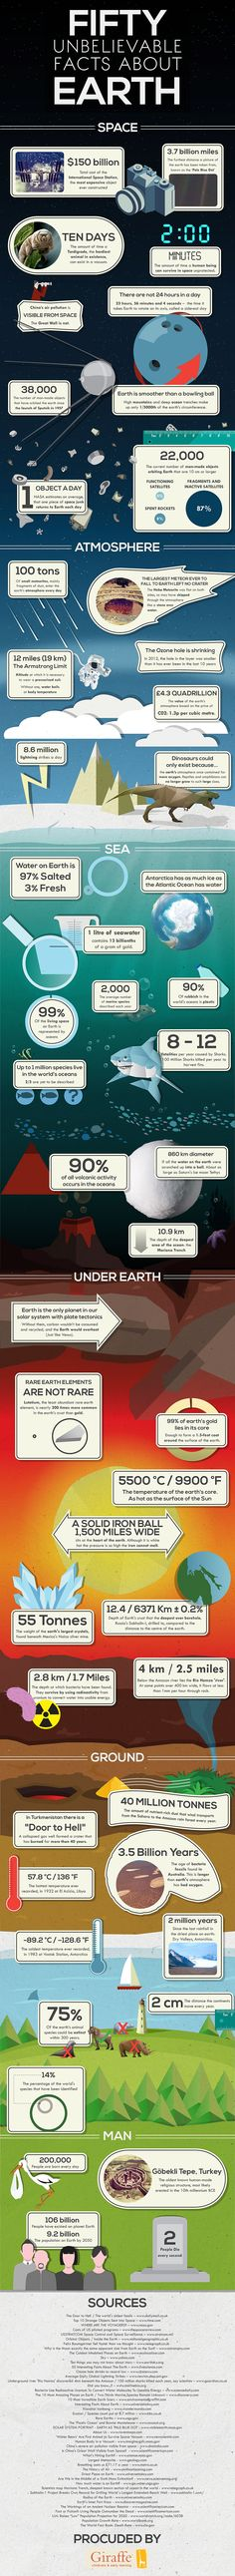 Poster Idea? 50 unbelievable facts about Earth [INFOGRAPHIC] | FAVES + CO.